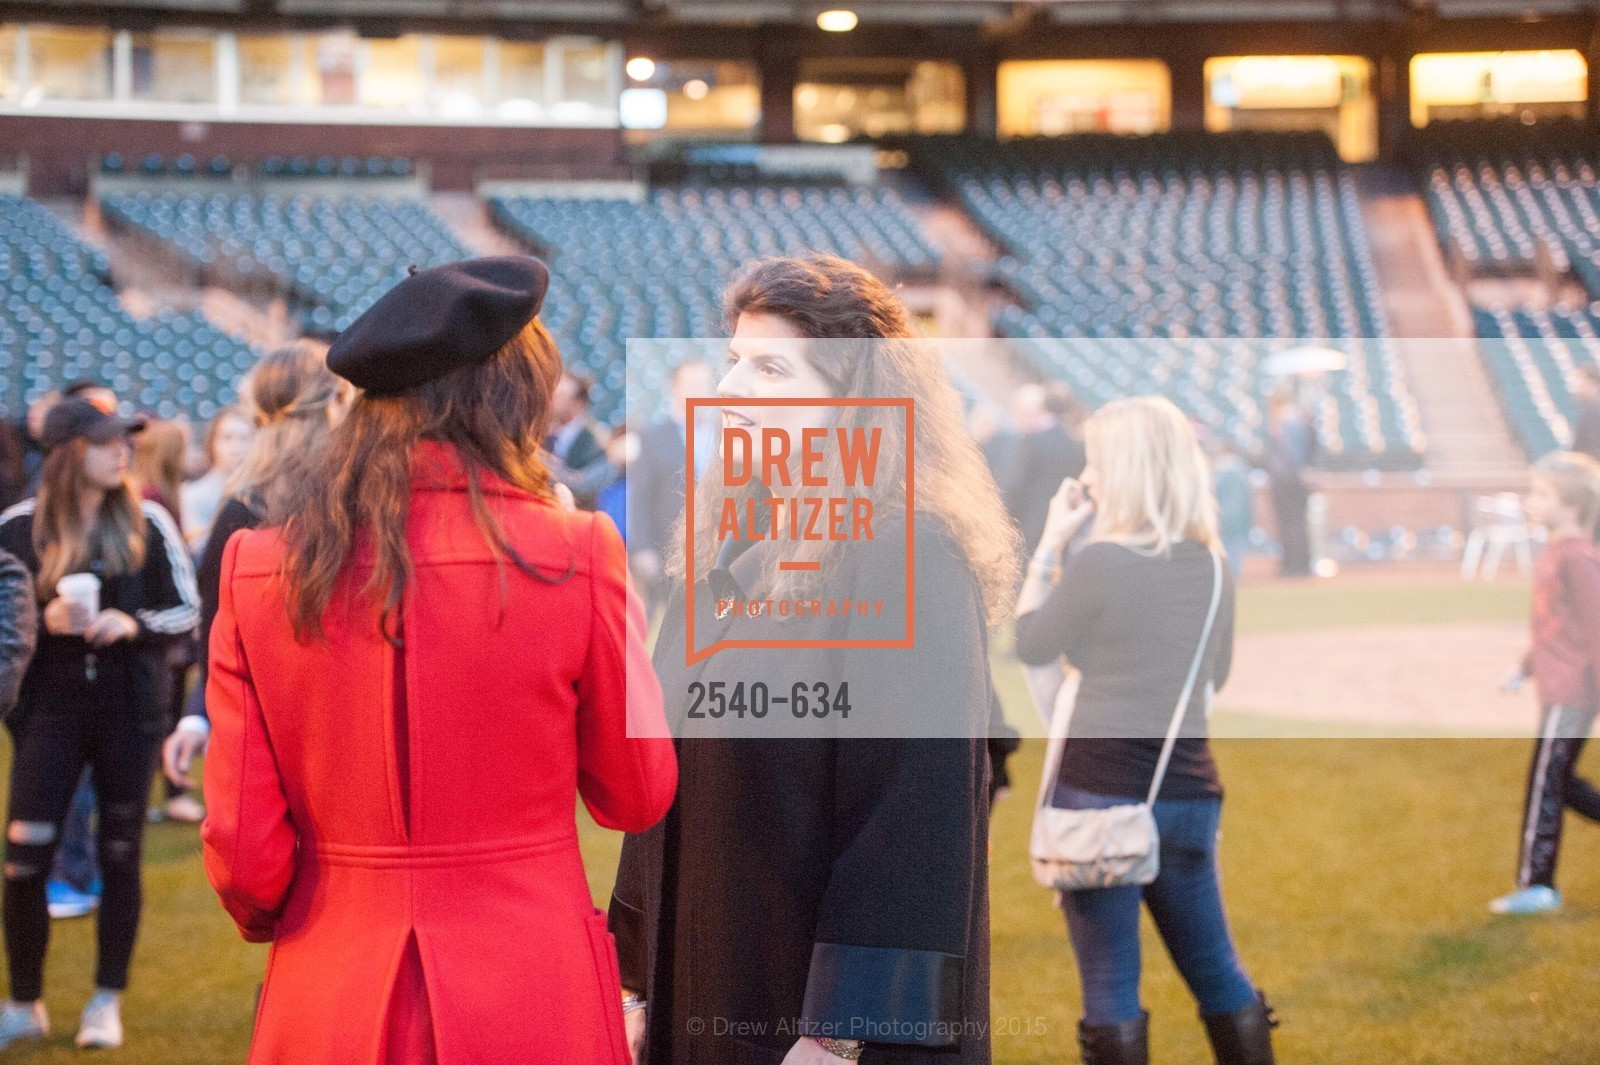 Marybeth Lamotte, Amy Wender-Hoch, Holiday Heroes 2015, AT&T Park, December 7th, 2015,Drew Altizer, Drew Altizer Photography, full-service agency, private events, San Francisco photographer, photographer california